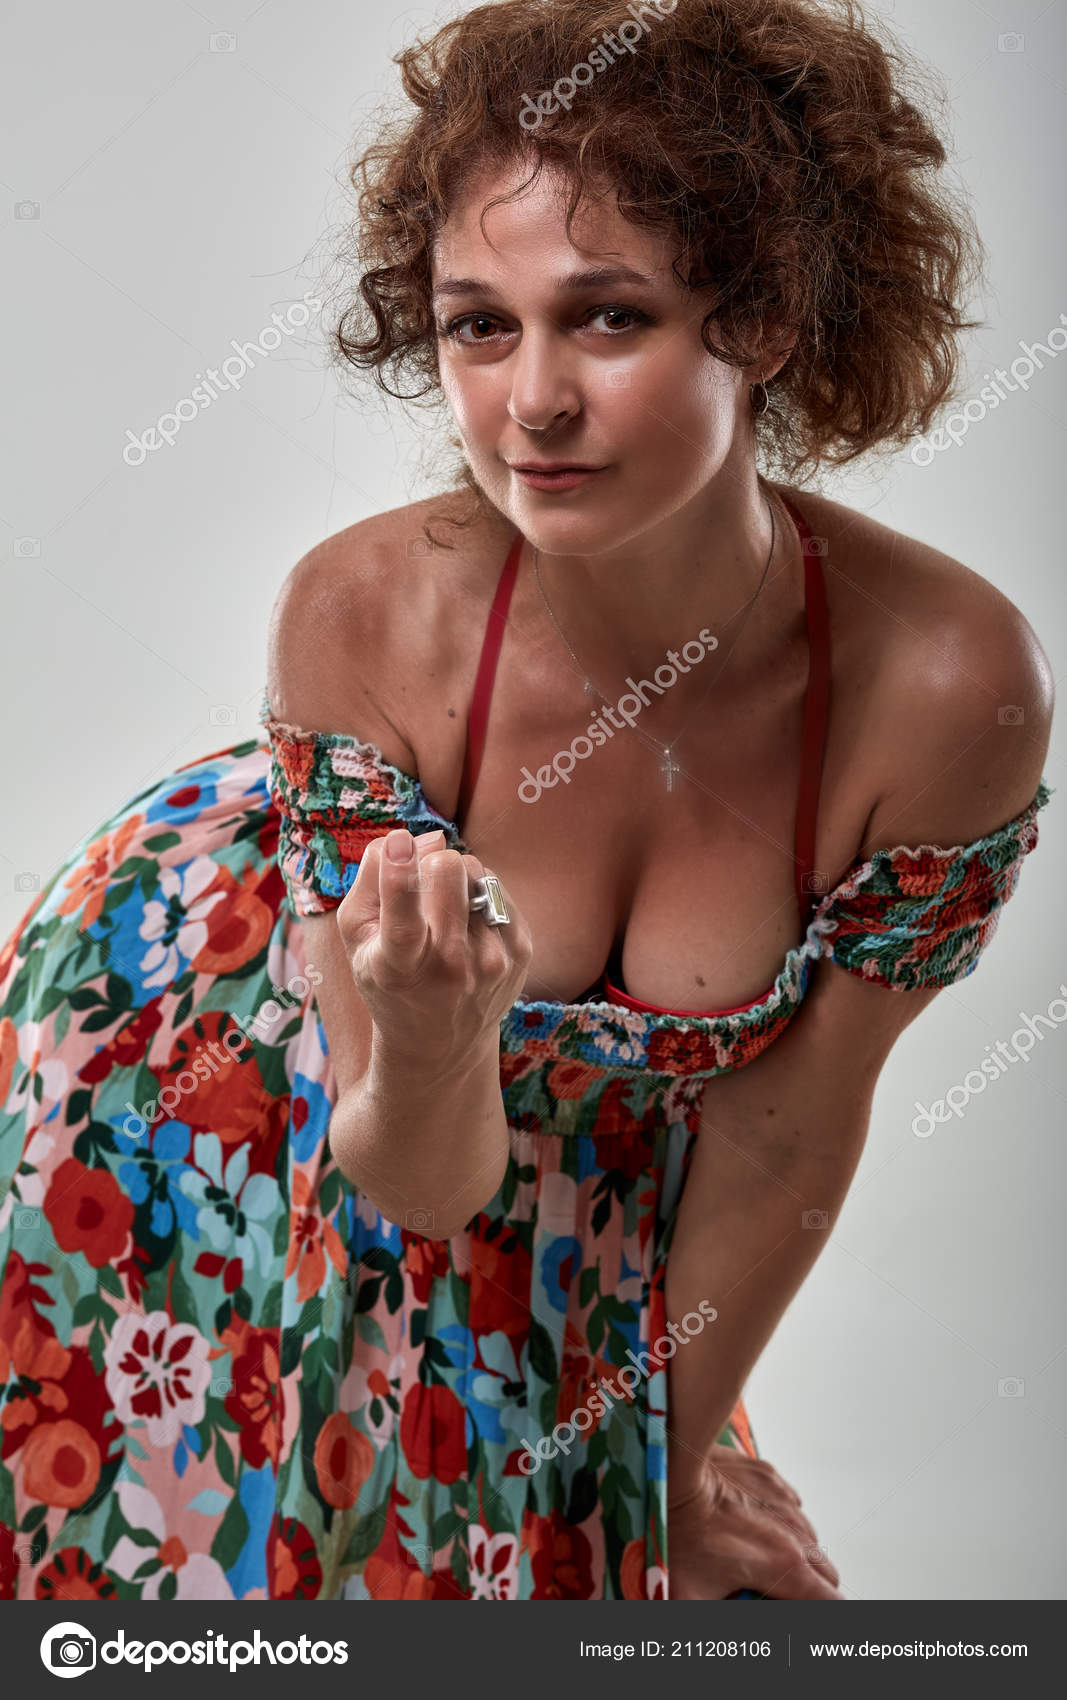 middle erotic photo aged woman